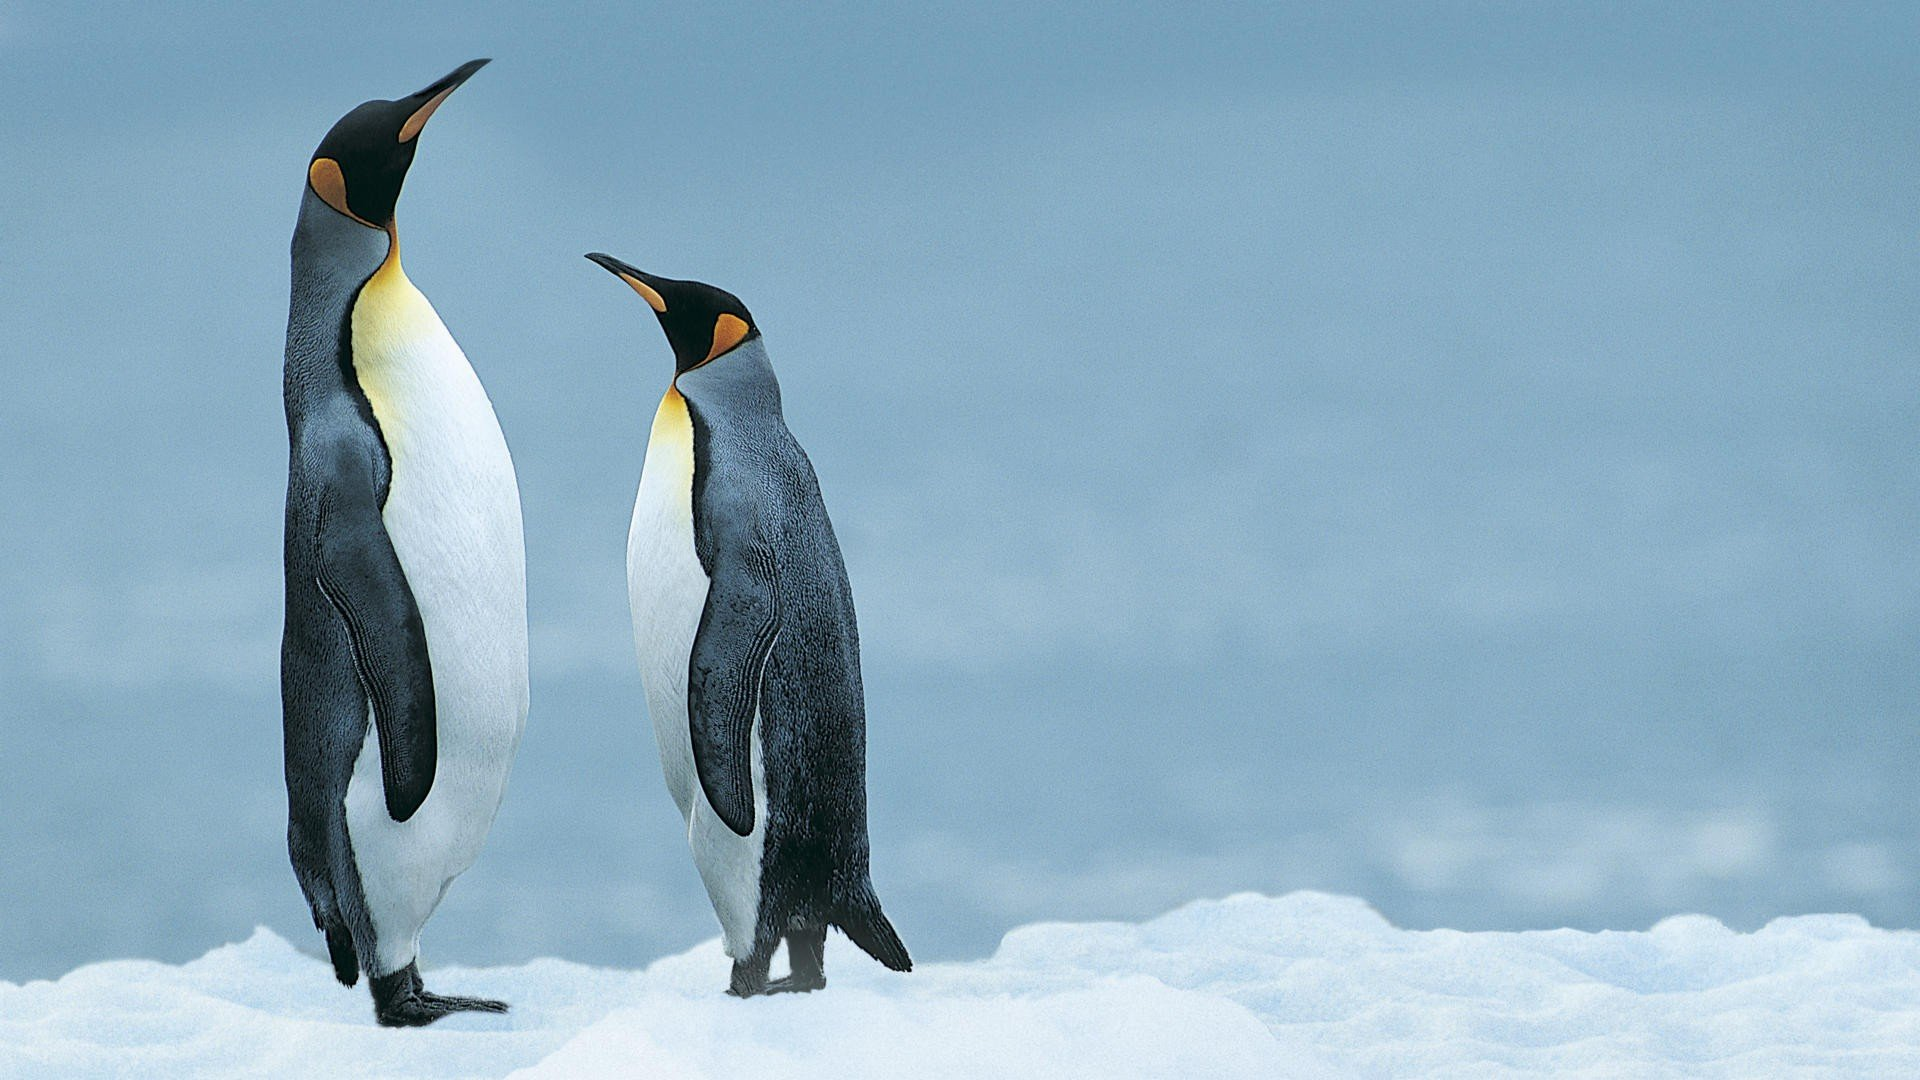 High resolution Penguin full hd wallpaper ID:149399 for computer